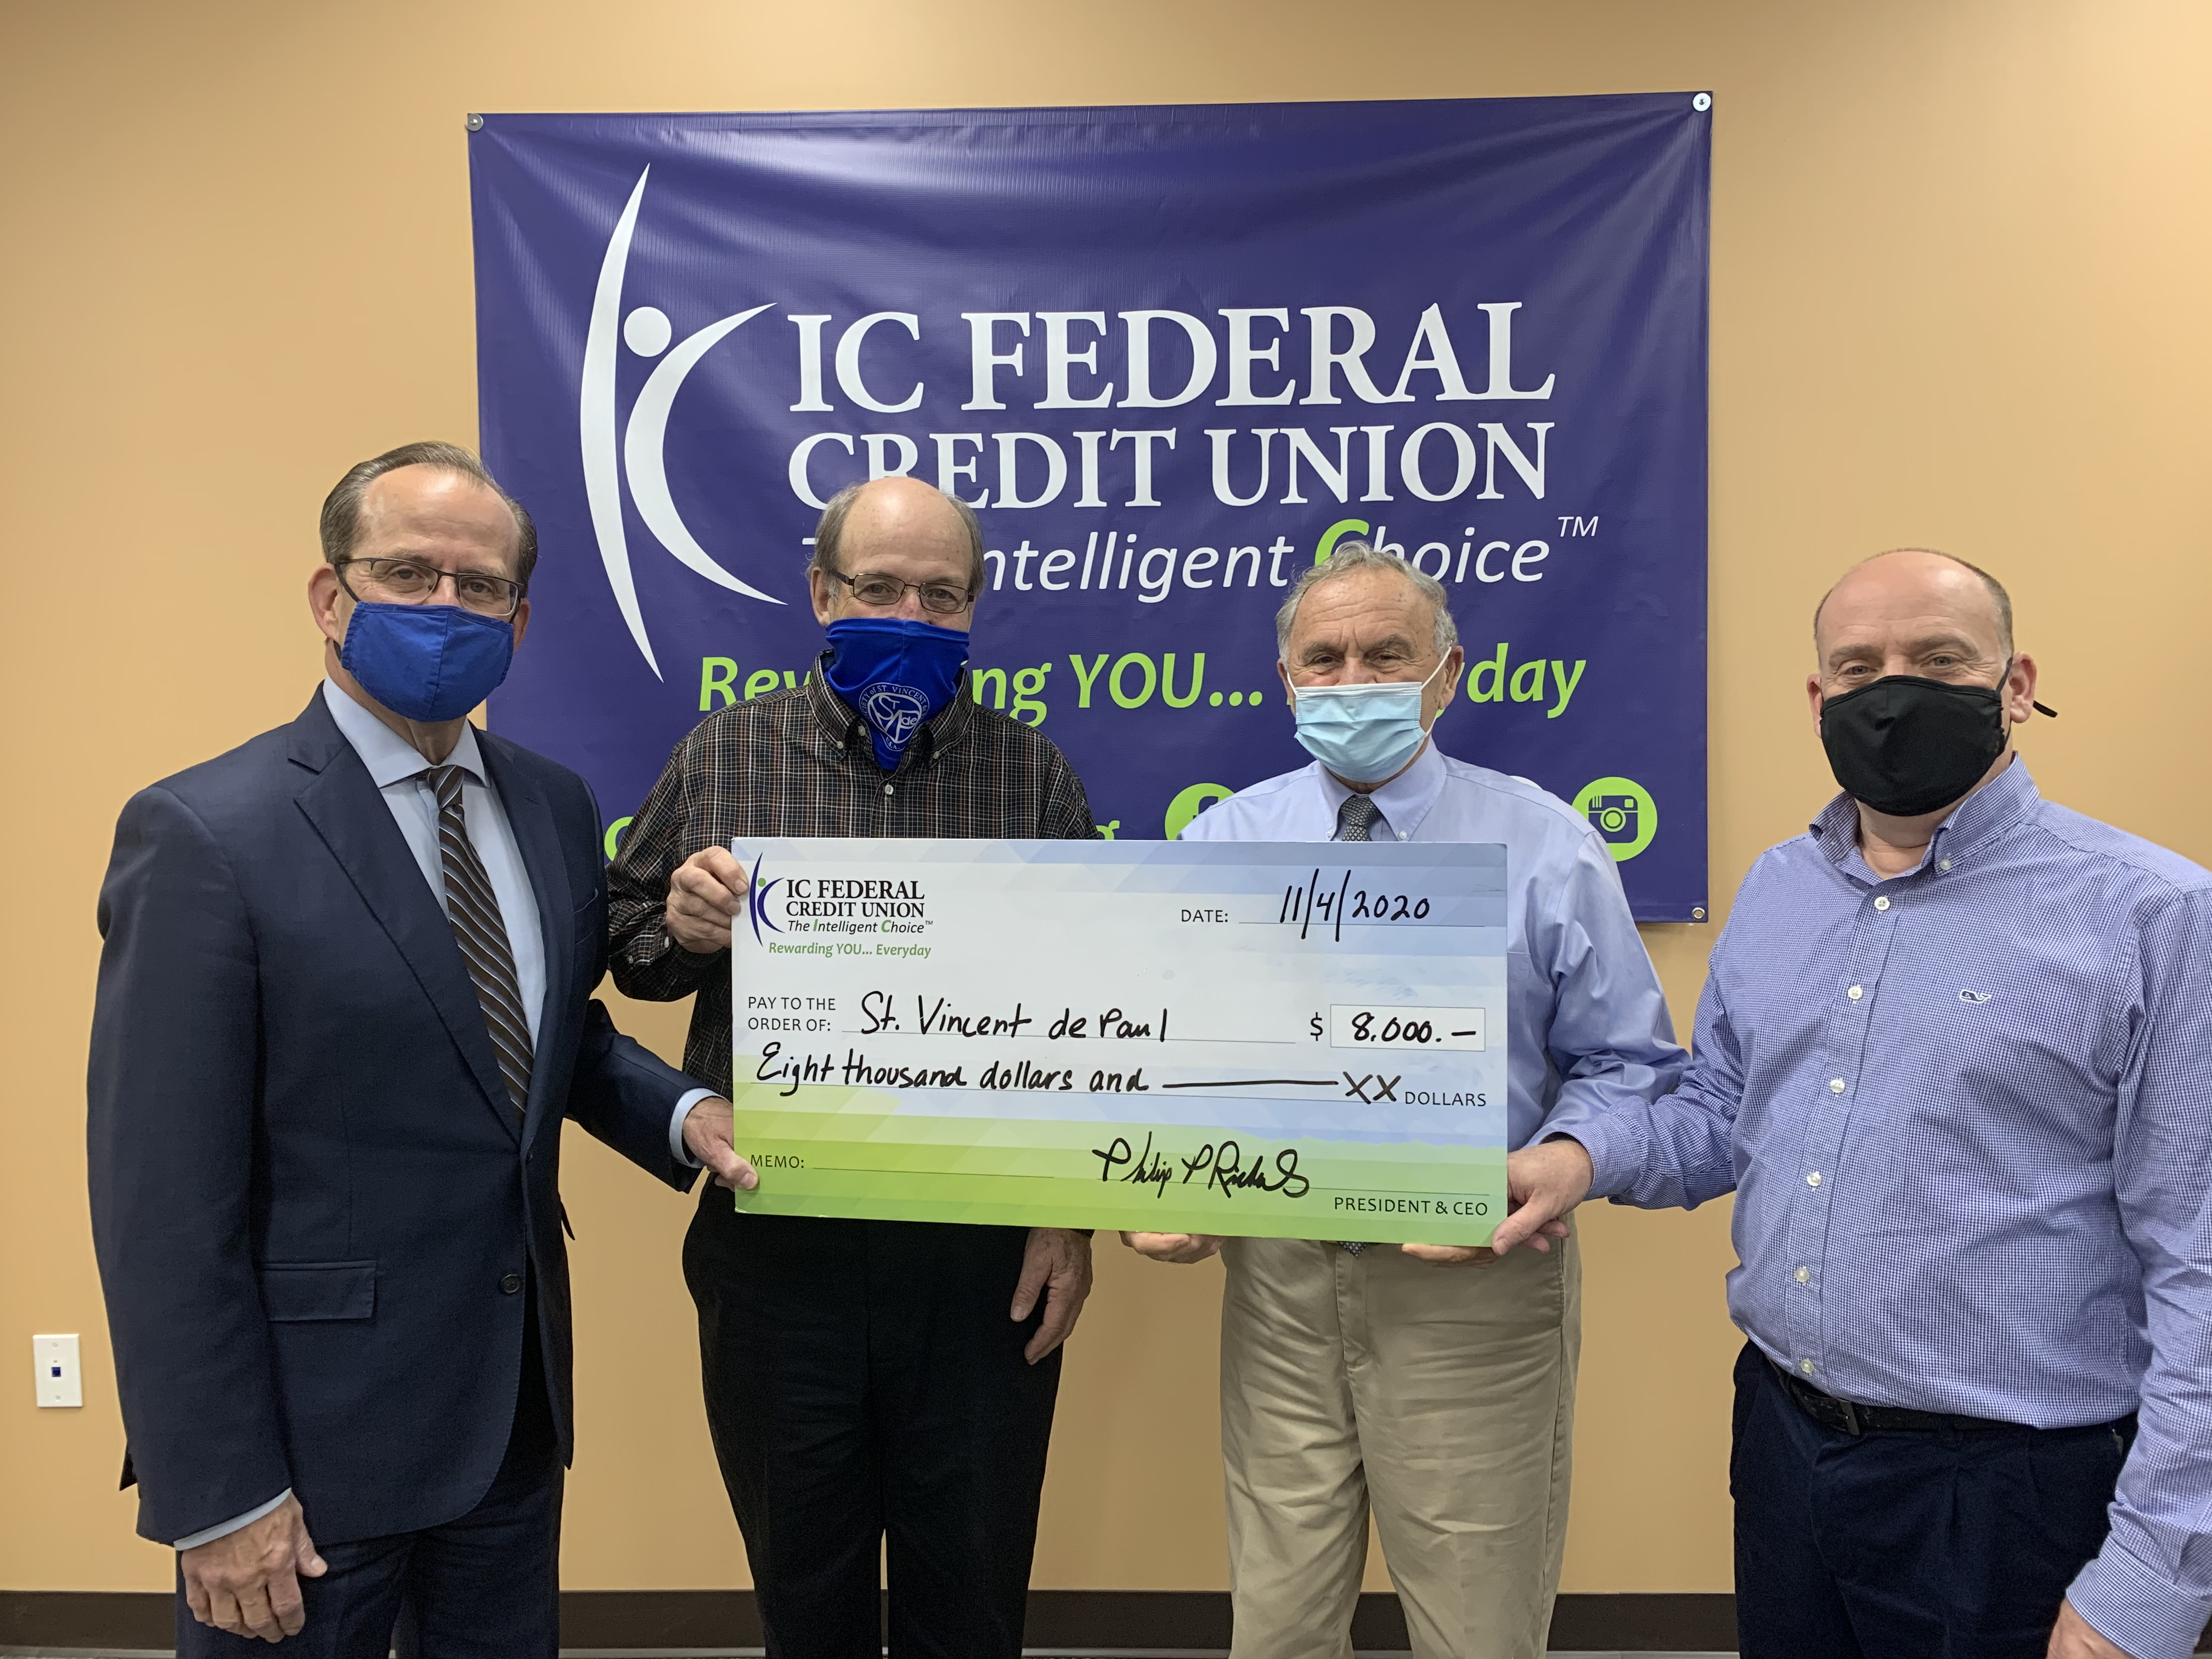 (l to r) – Phil Richards, President/CEO of IC; Roger Boisvert, President of the St. Vincent de Paul; Norman Boudreau, former President/CEO of IC; and Jim Hirst, SVP of IT at IC.